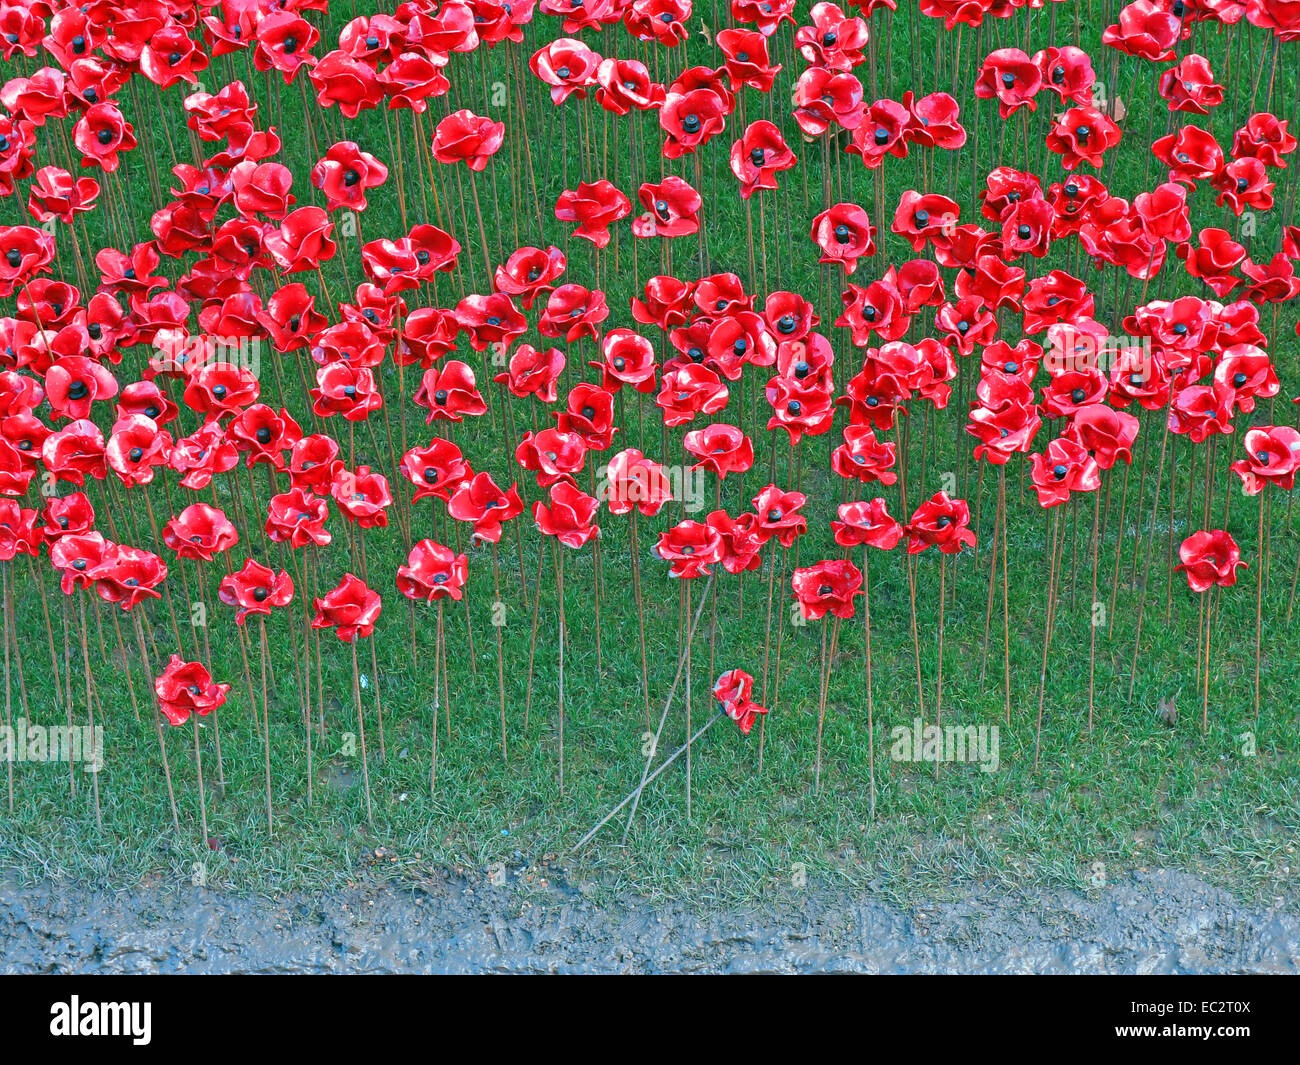 Tower,of,Greater,London,England,UK,installation,art,moat,between,July,and,November,2014,commemorating,the,centenary,of,the,outbreak,of,World,War,I,one,ceramic,poppies,888,246,British,or,Colonial,serviceman,killed,in,the,War,Paul,Cummings,Cummins,Tom,Piper,attraction,2014,tourist,tourism,red,flower,Gotonysmith,first,line,of,a,poem,by,an,unknown,World,War,I,soldier,pool,of,blood,which,appeared,to,be,pouring,out,of,a,bastion,window,(the,Buy,Pictures,of,Buy Images Of,Weeping,Window,remembrance,respect,ex-serviceman,ex-servicemen,flowers,summer,autumn,sun,sky,blue,bluesky,detail,of,mud,grass,,,